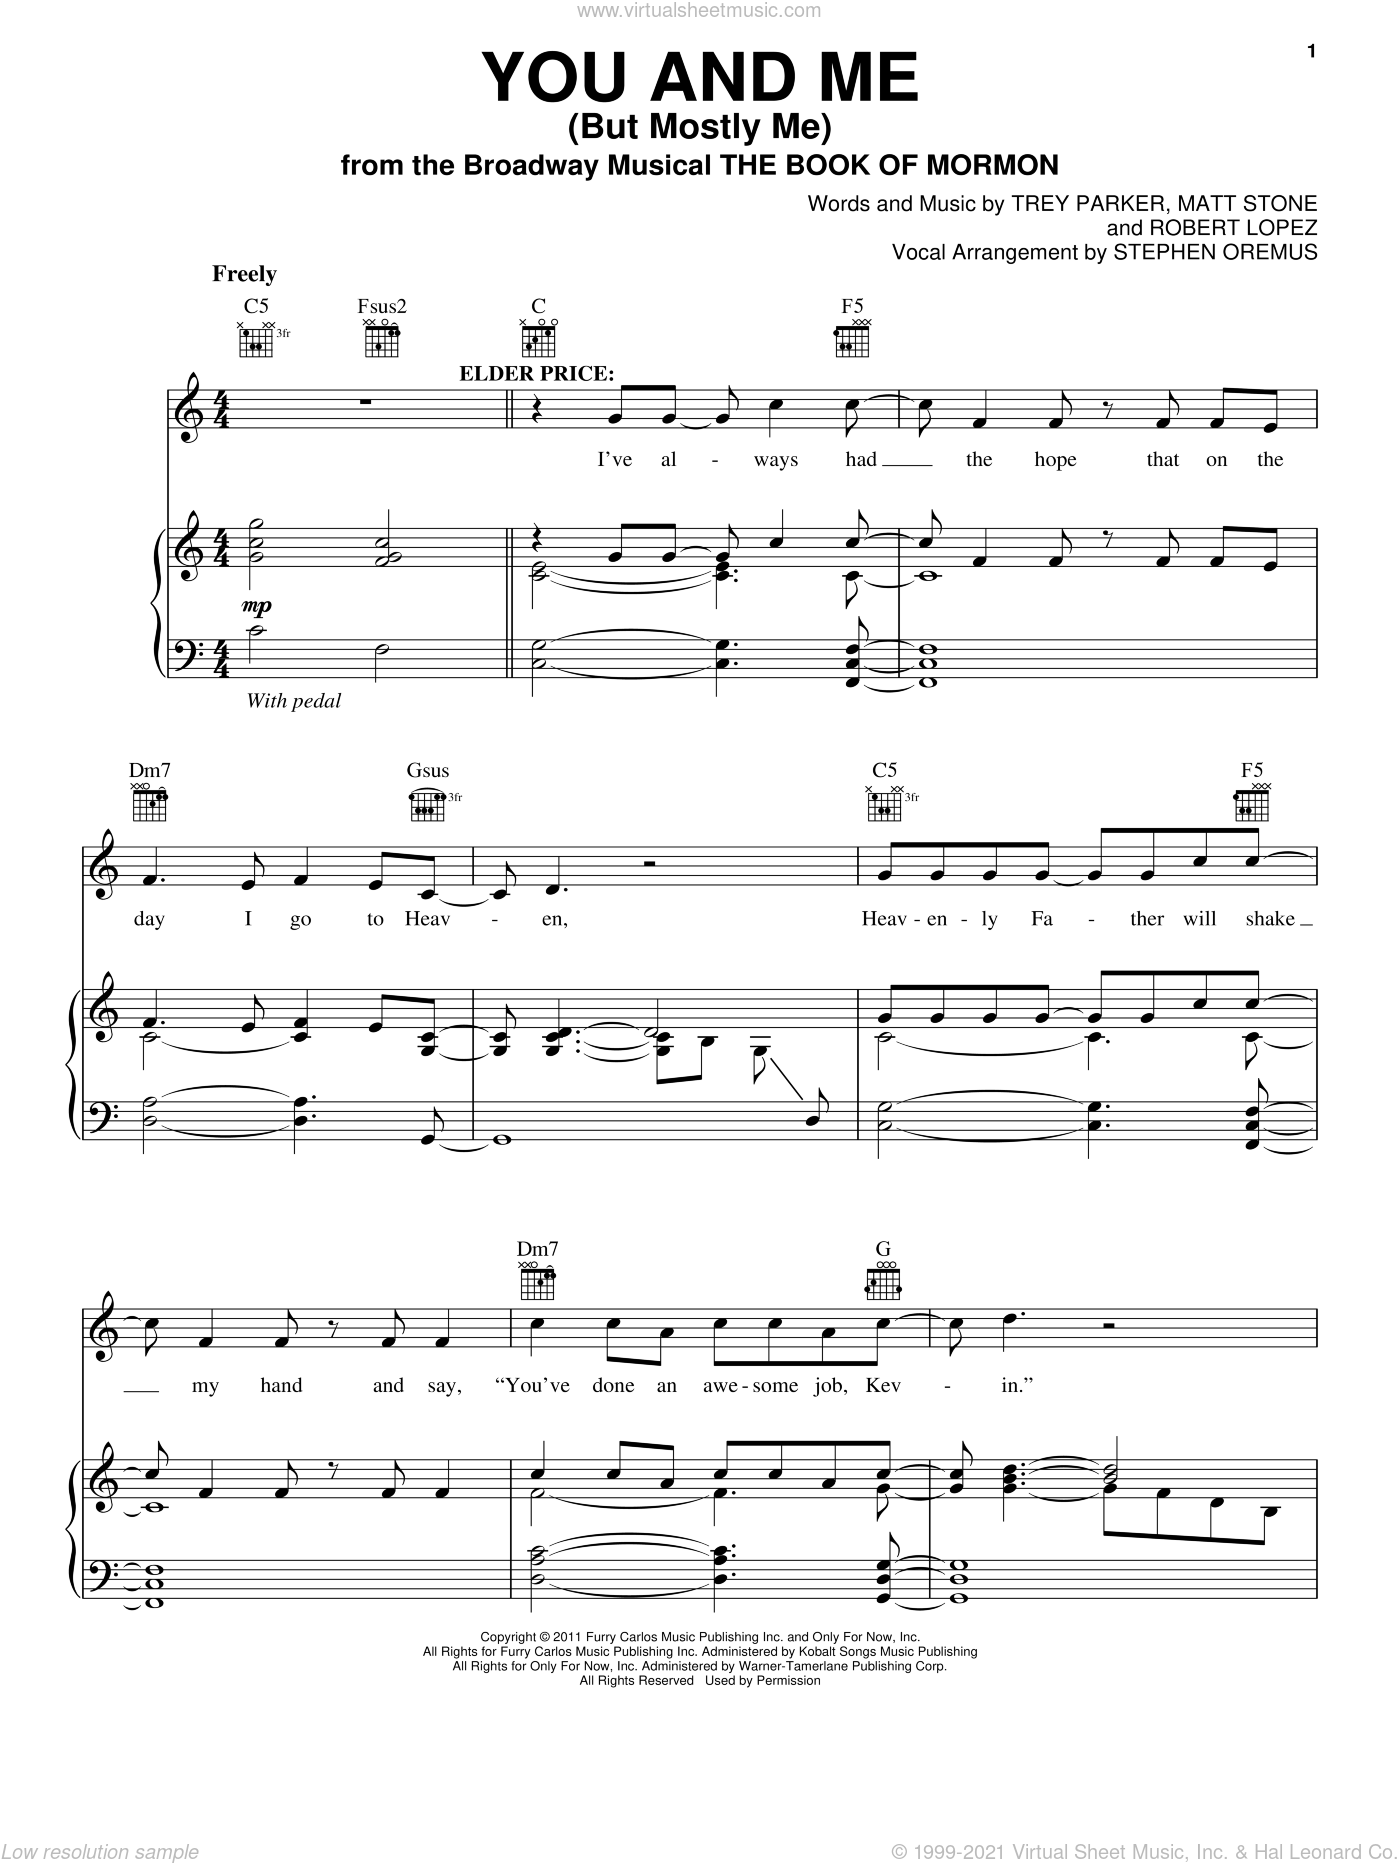 You And Me (But Mostly Me) sheet music for voice, piano or guitar by Robert Lopez, Matt Stone and Trey Parker, intermediate. Score Image Preview.